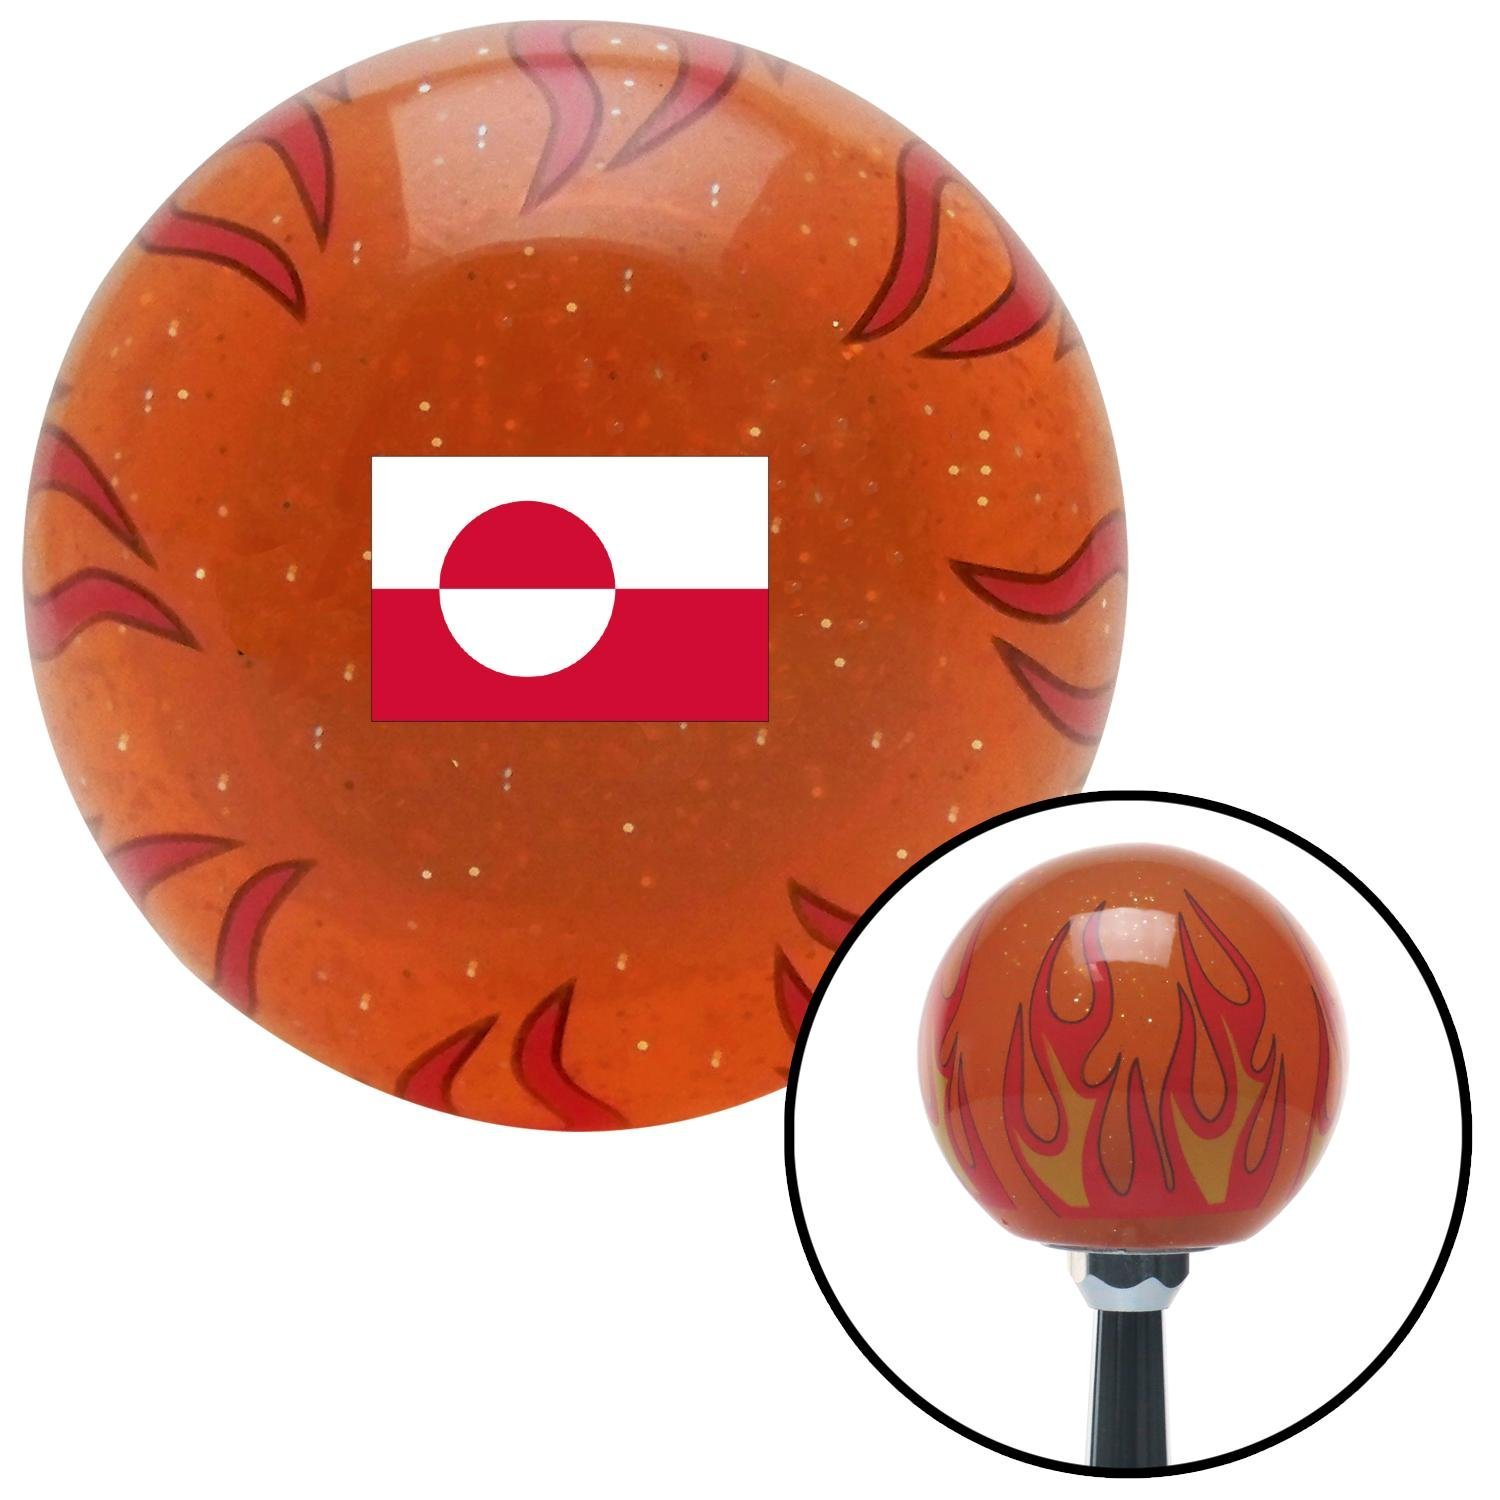 American Shifter 310772 Shift Knob Greenland Orange Flame Metal Flake with M16 x 1.5 Insert